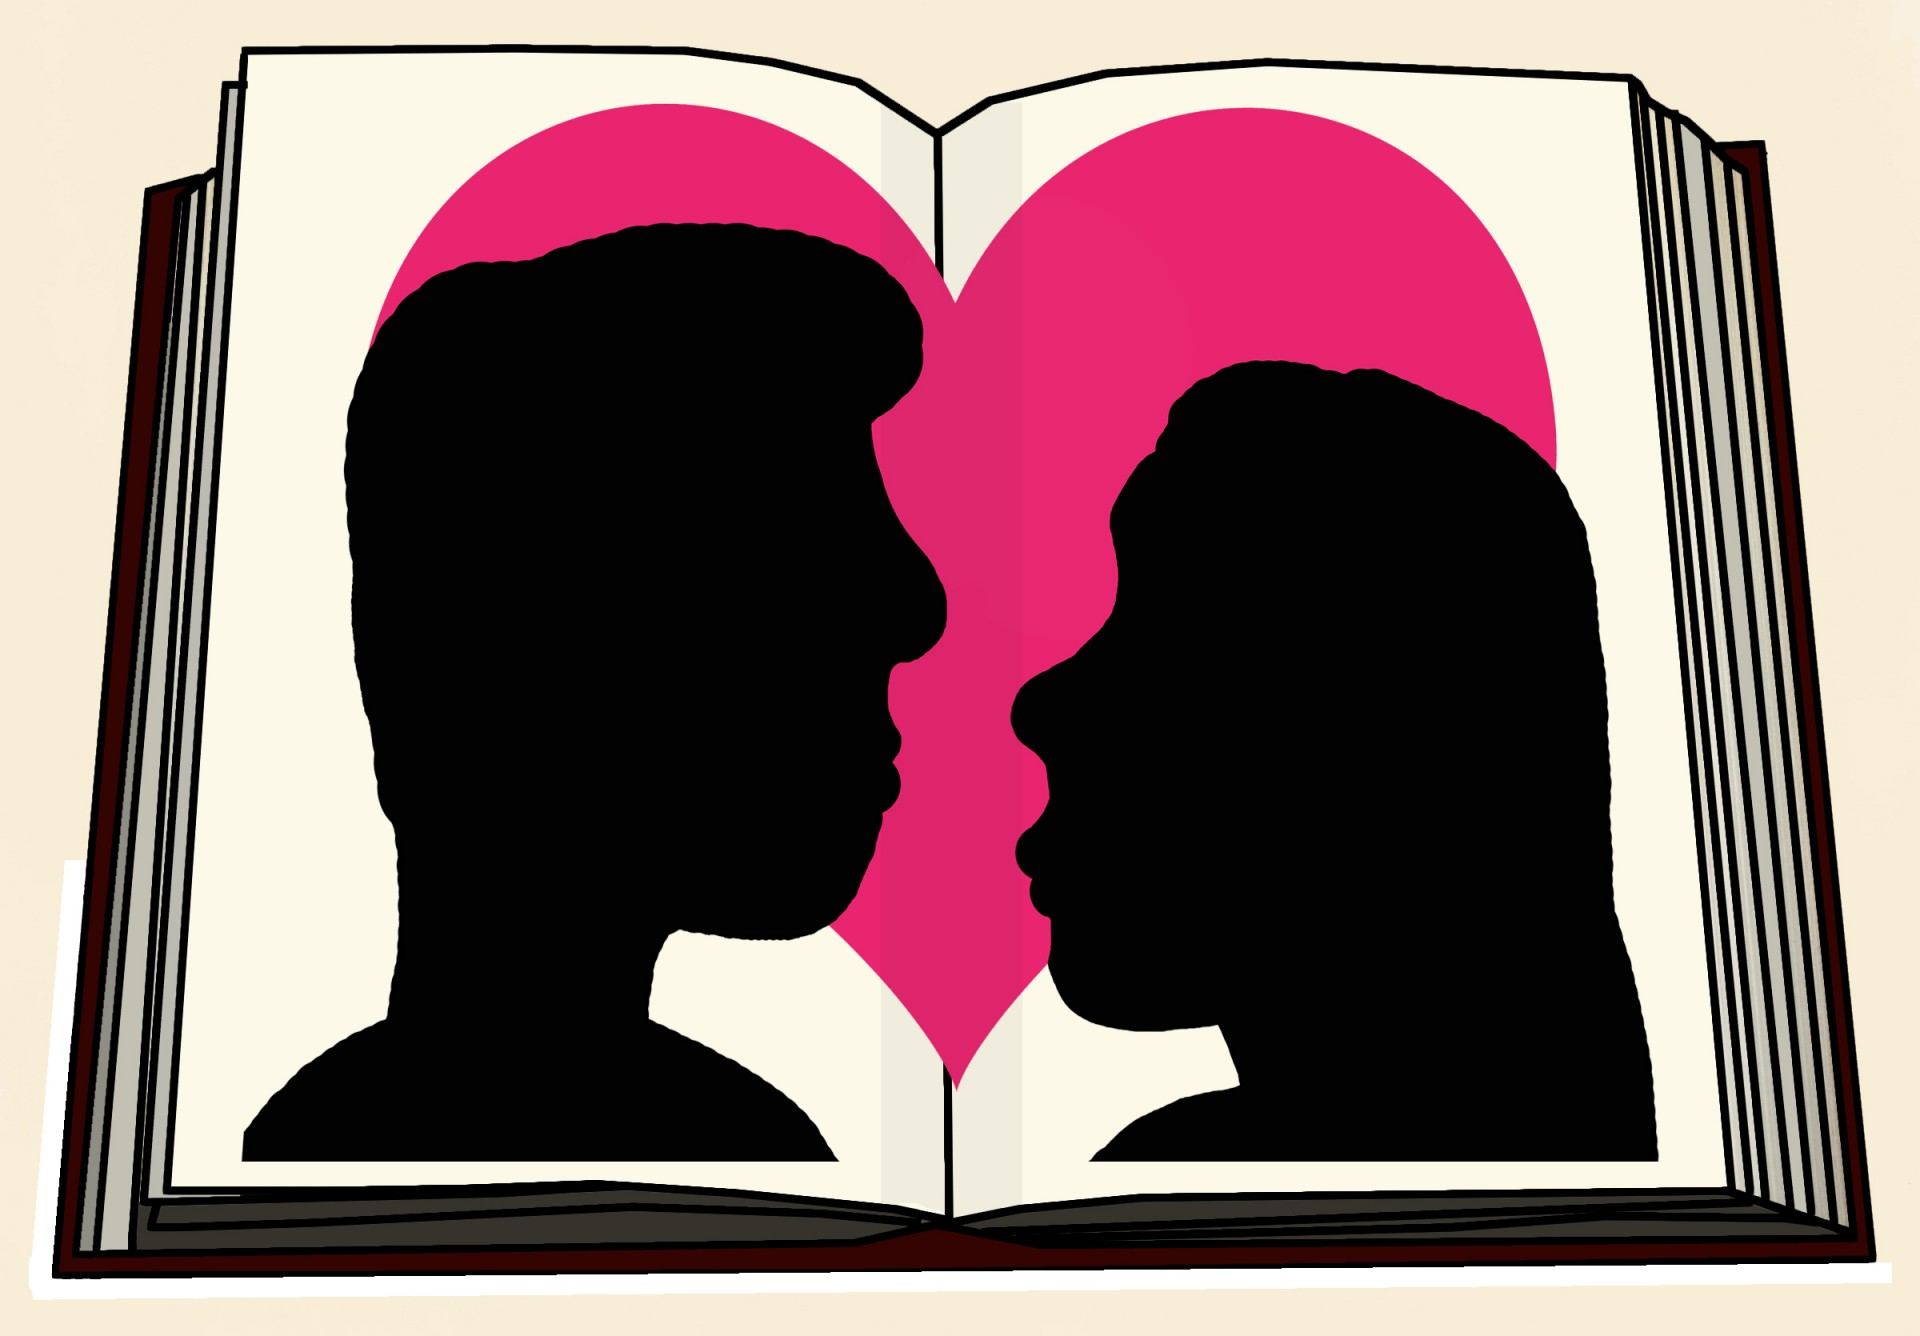 Knowledge clipart romance novel. Clip art of a